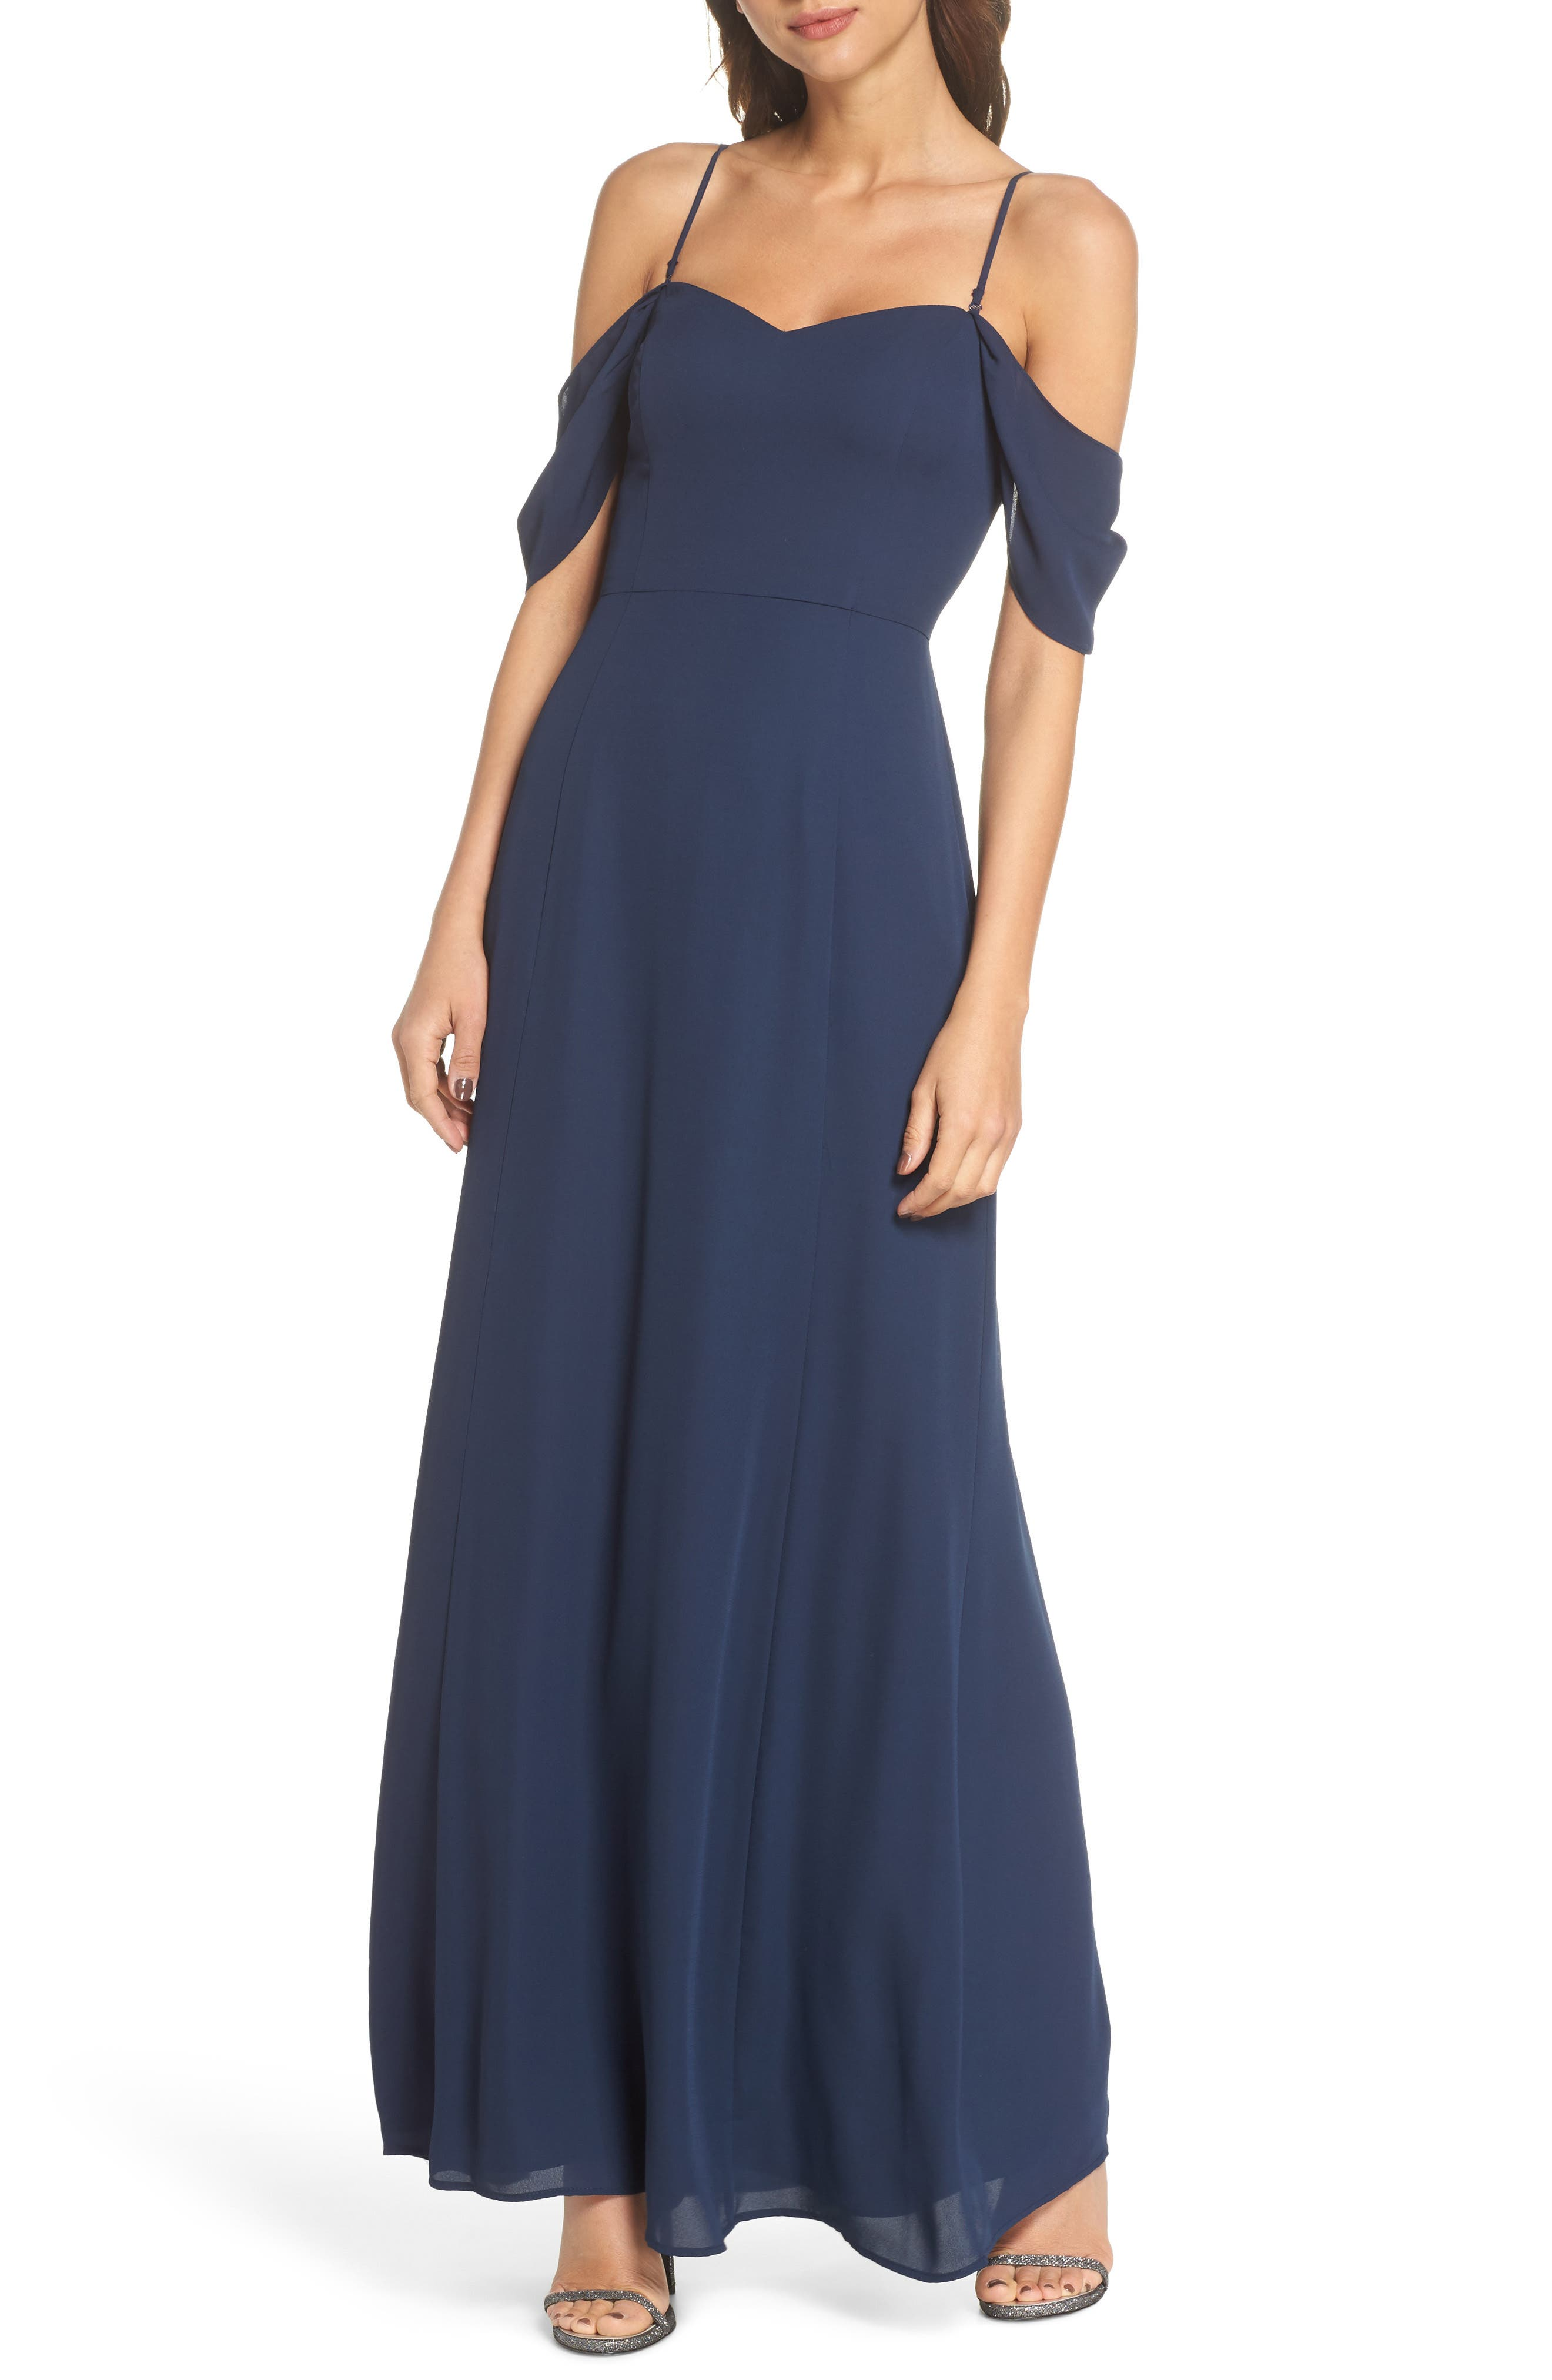 Rachel Off the Shoulder Gored Maxi Dress,                             Alternate thumbnail 4, color,                             Navy